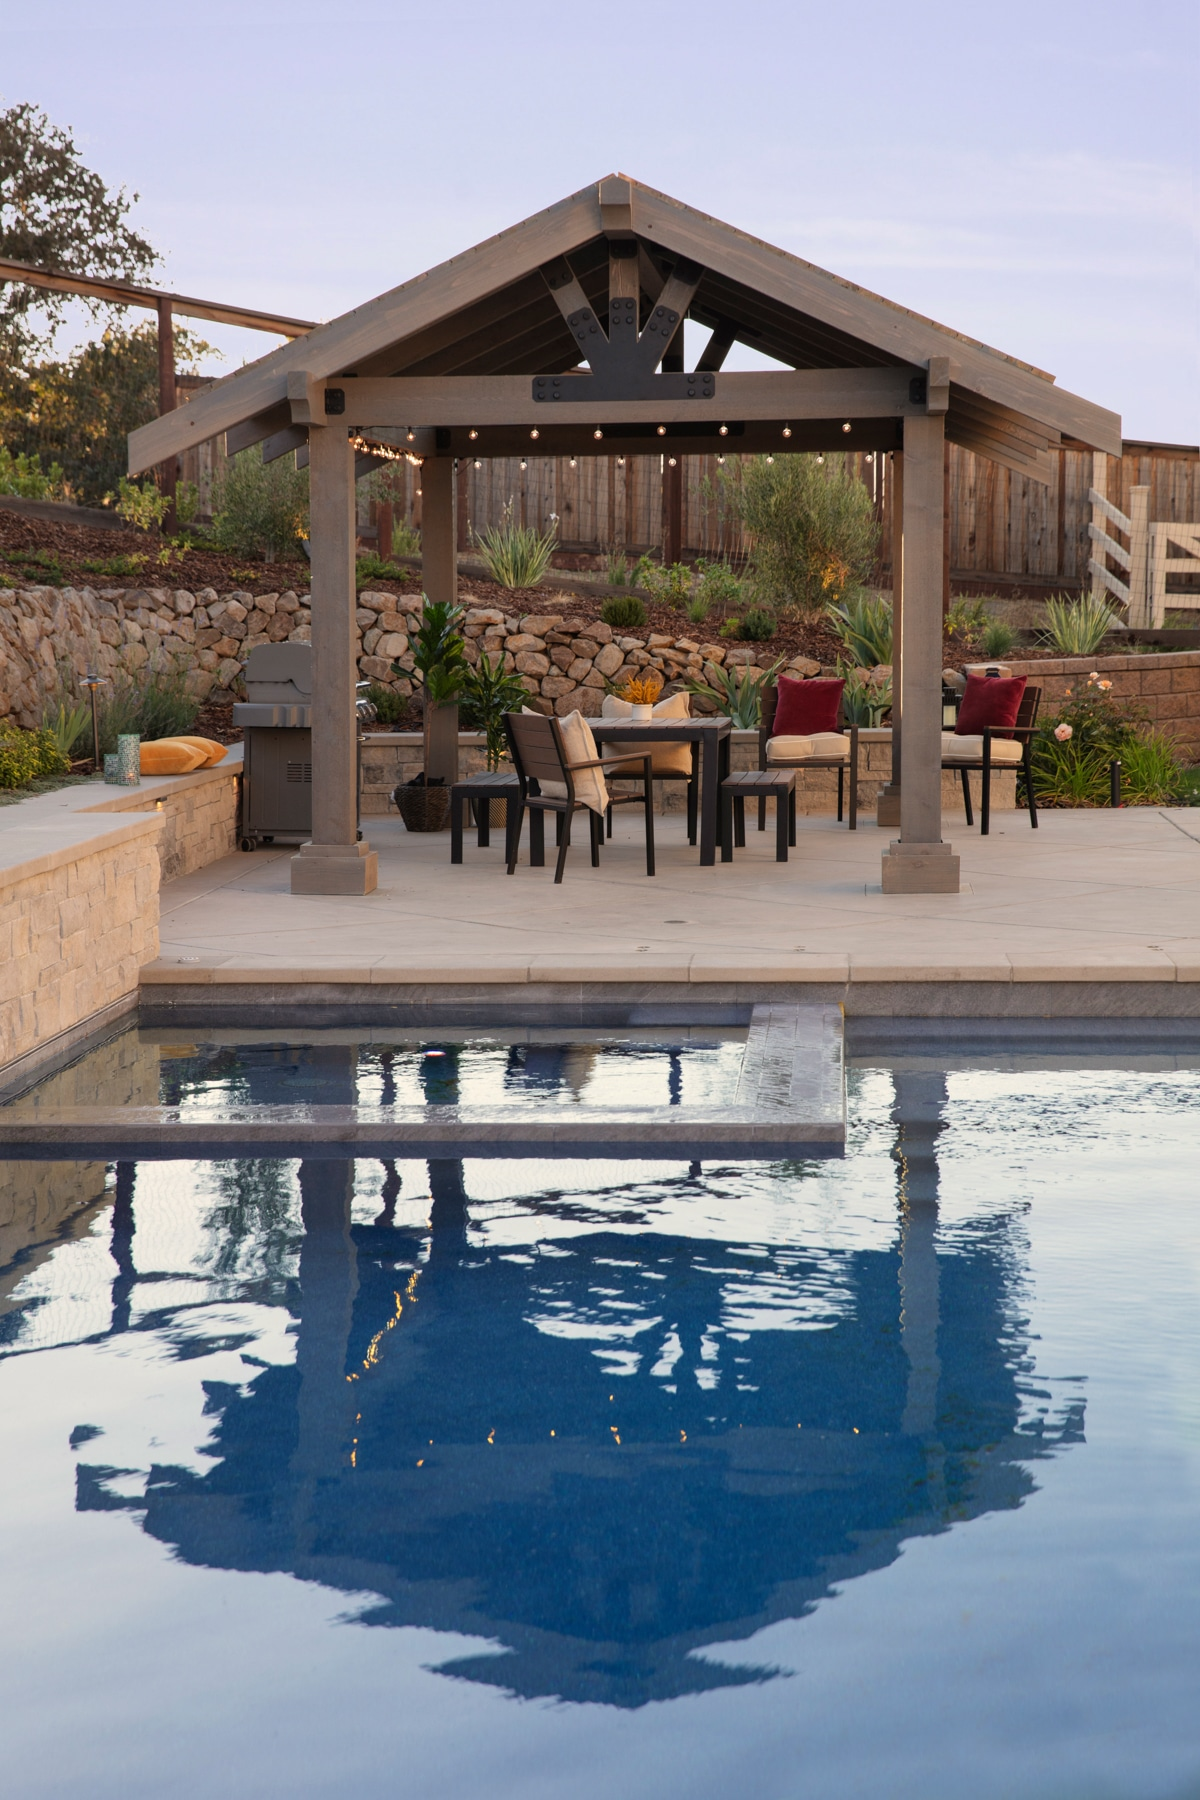 Build an easy DIY pergola or outdoor party pavilion in a weekend